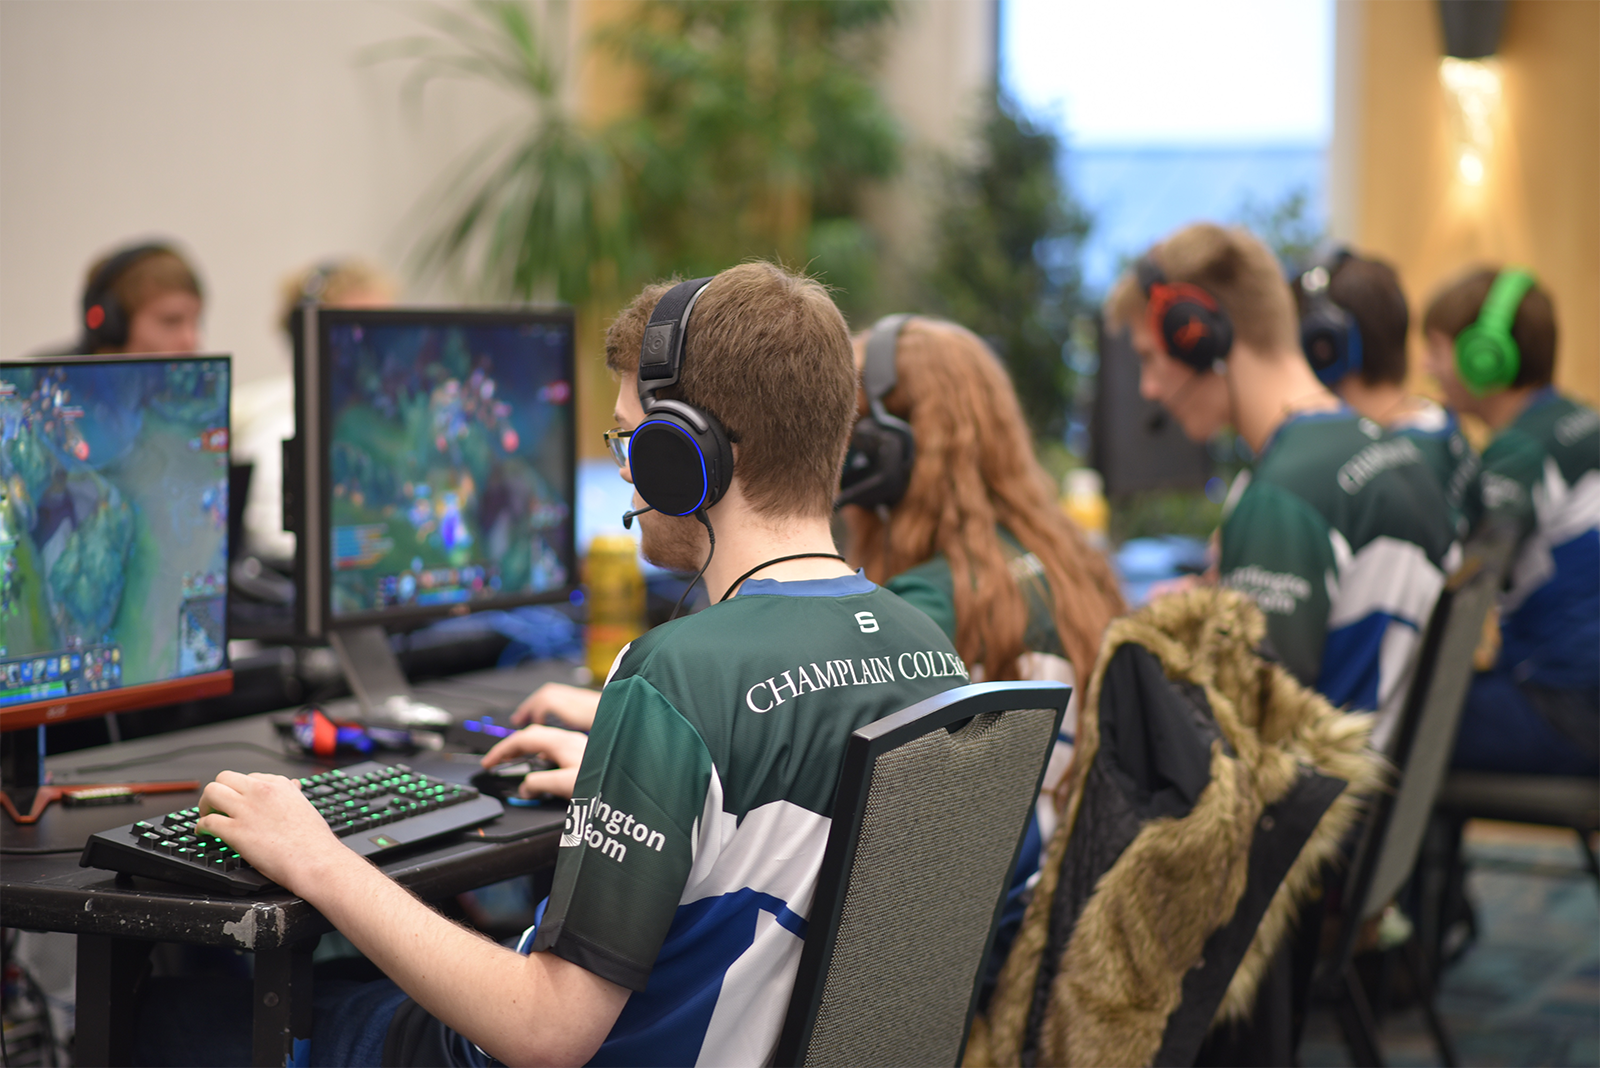 Group of students wearing team uniforms playing Esports games